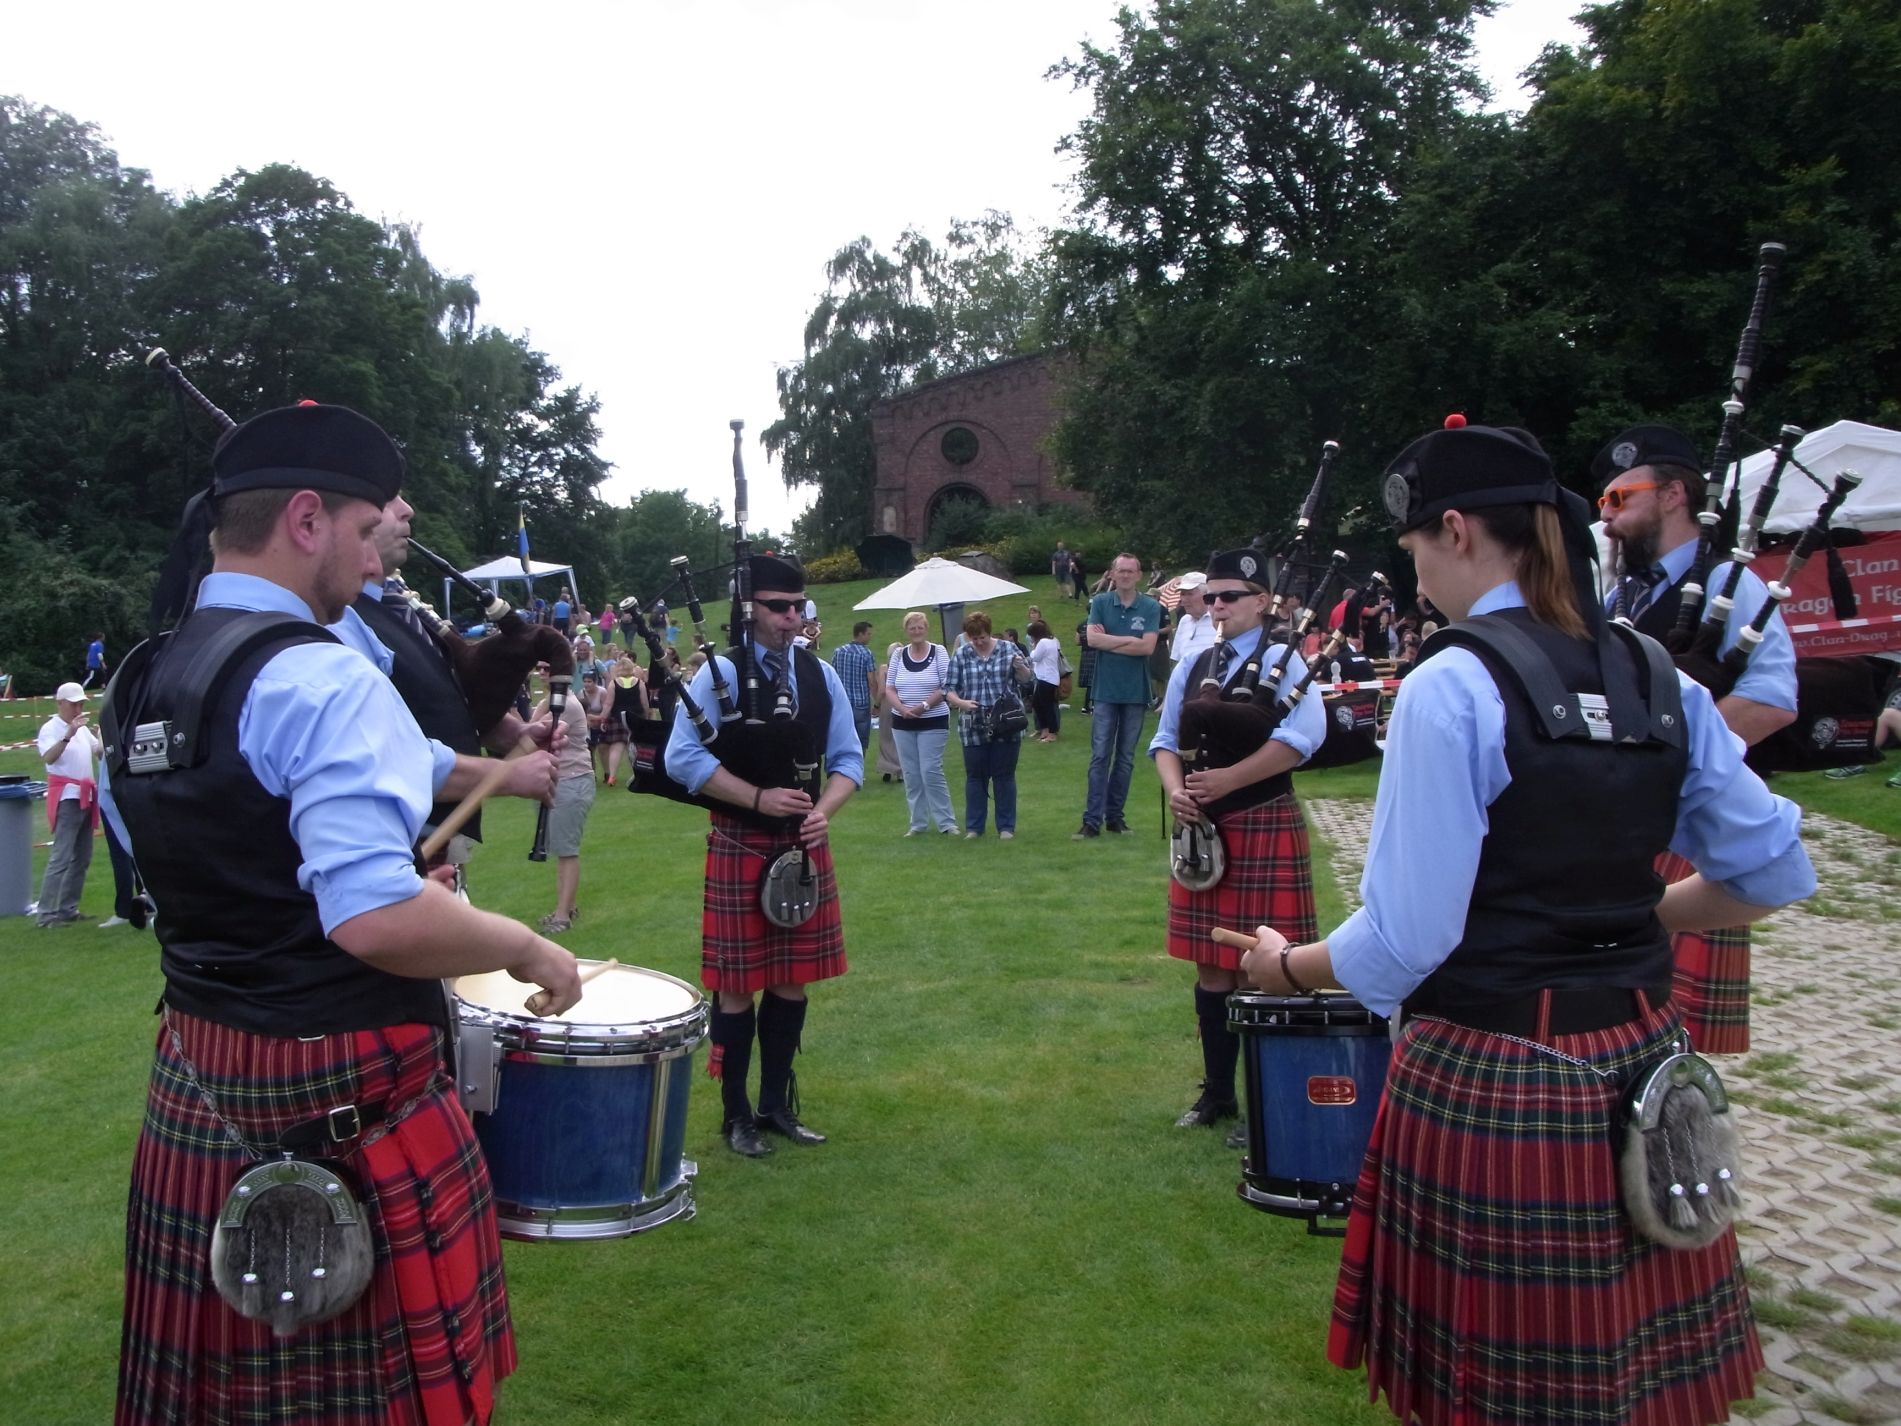 2. Highland Games Hamm, 2015